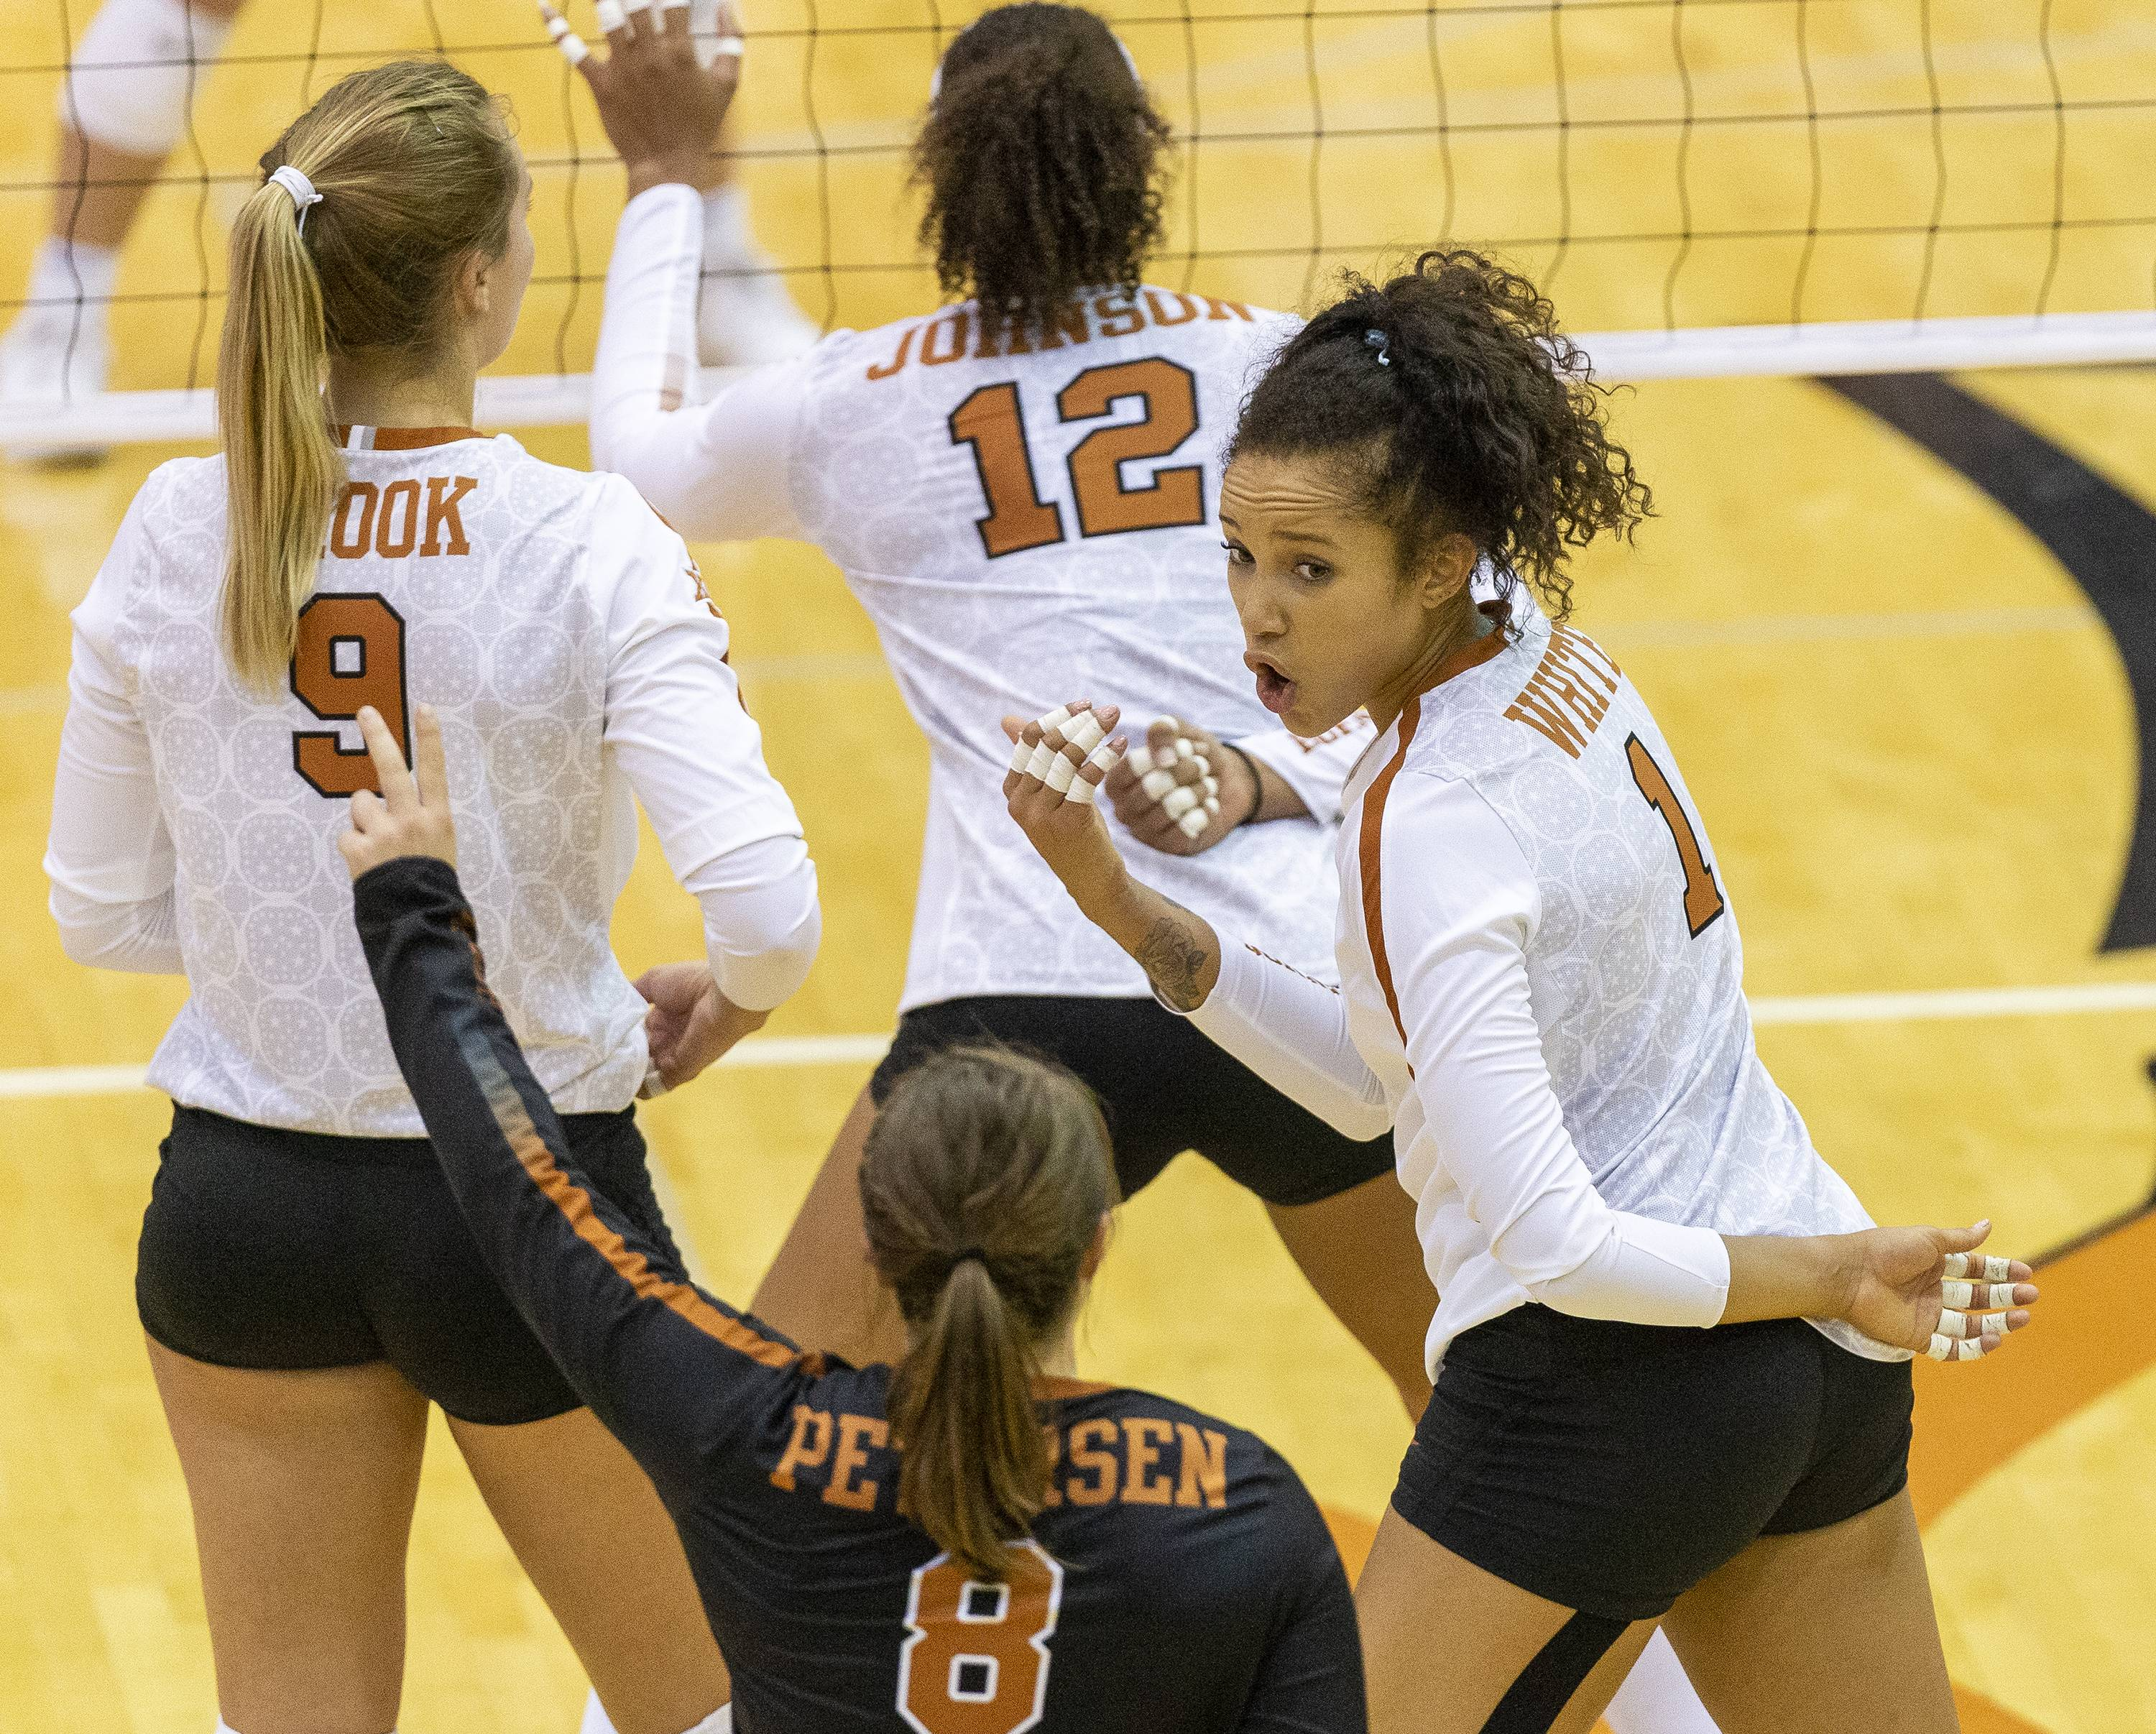 Texas heads into the final week of non-conference play with a firm grip on its No. 3 ranking